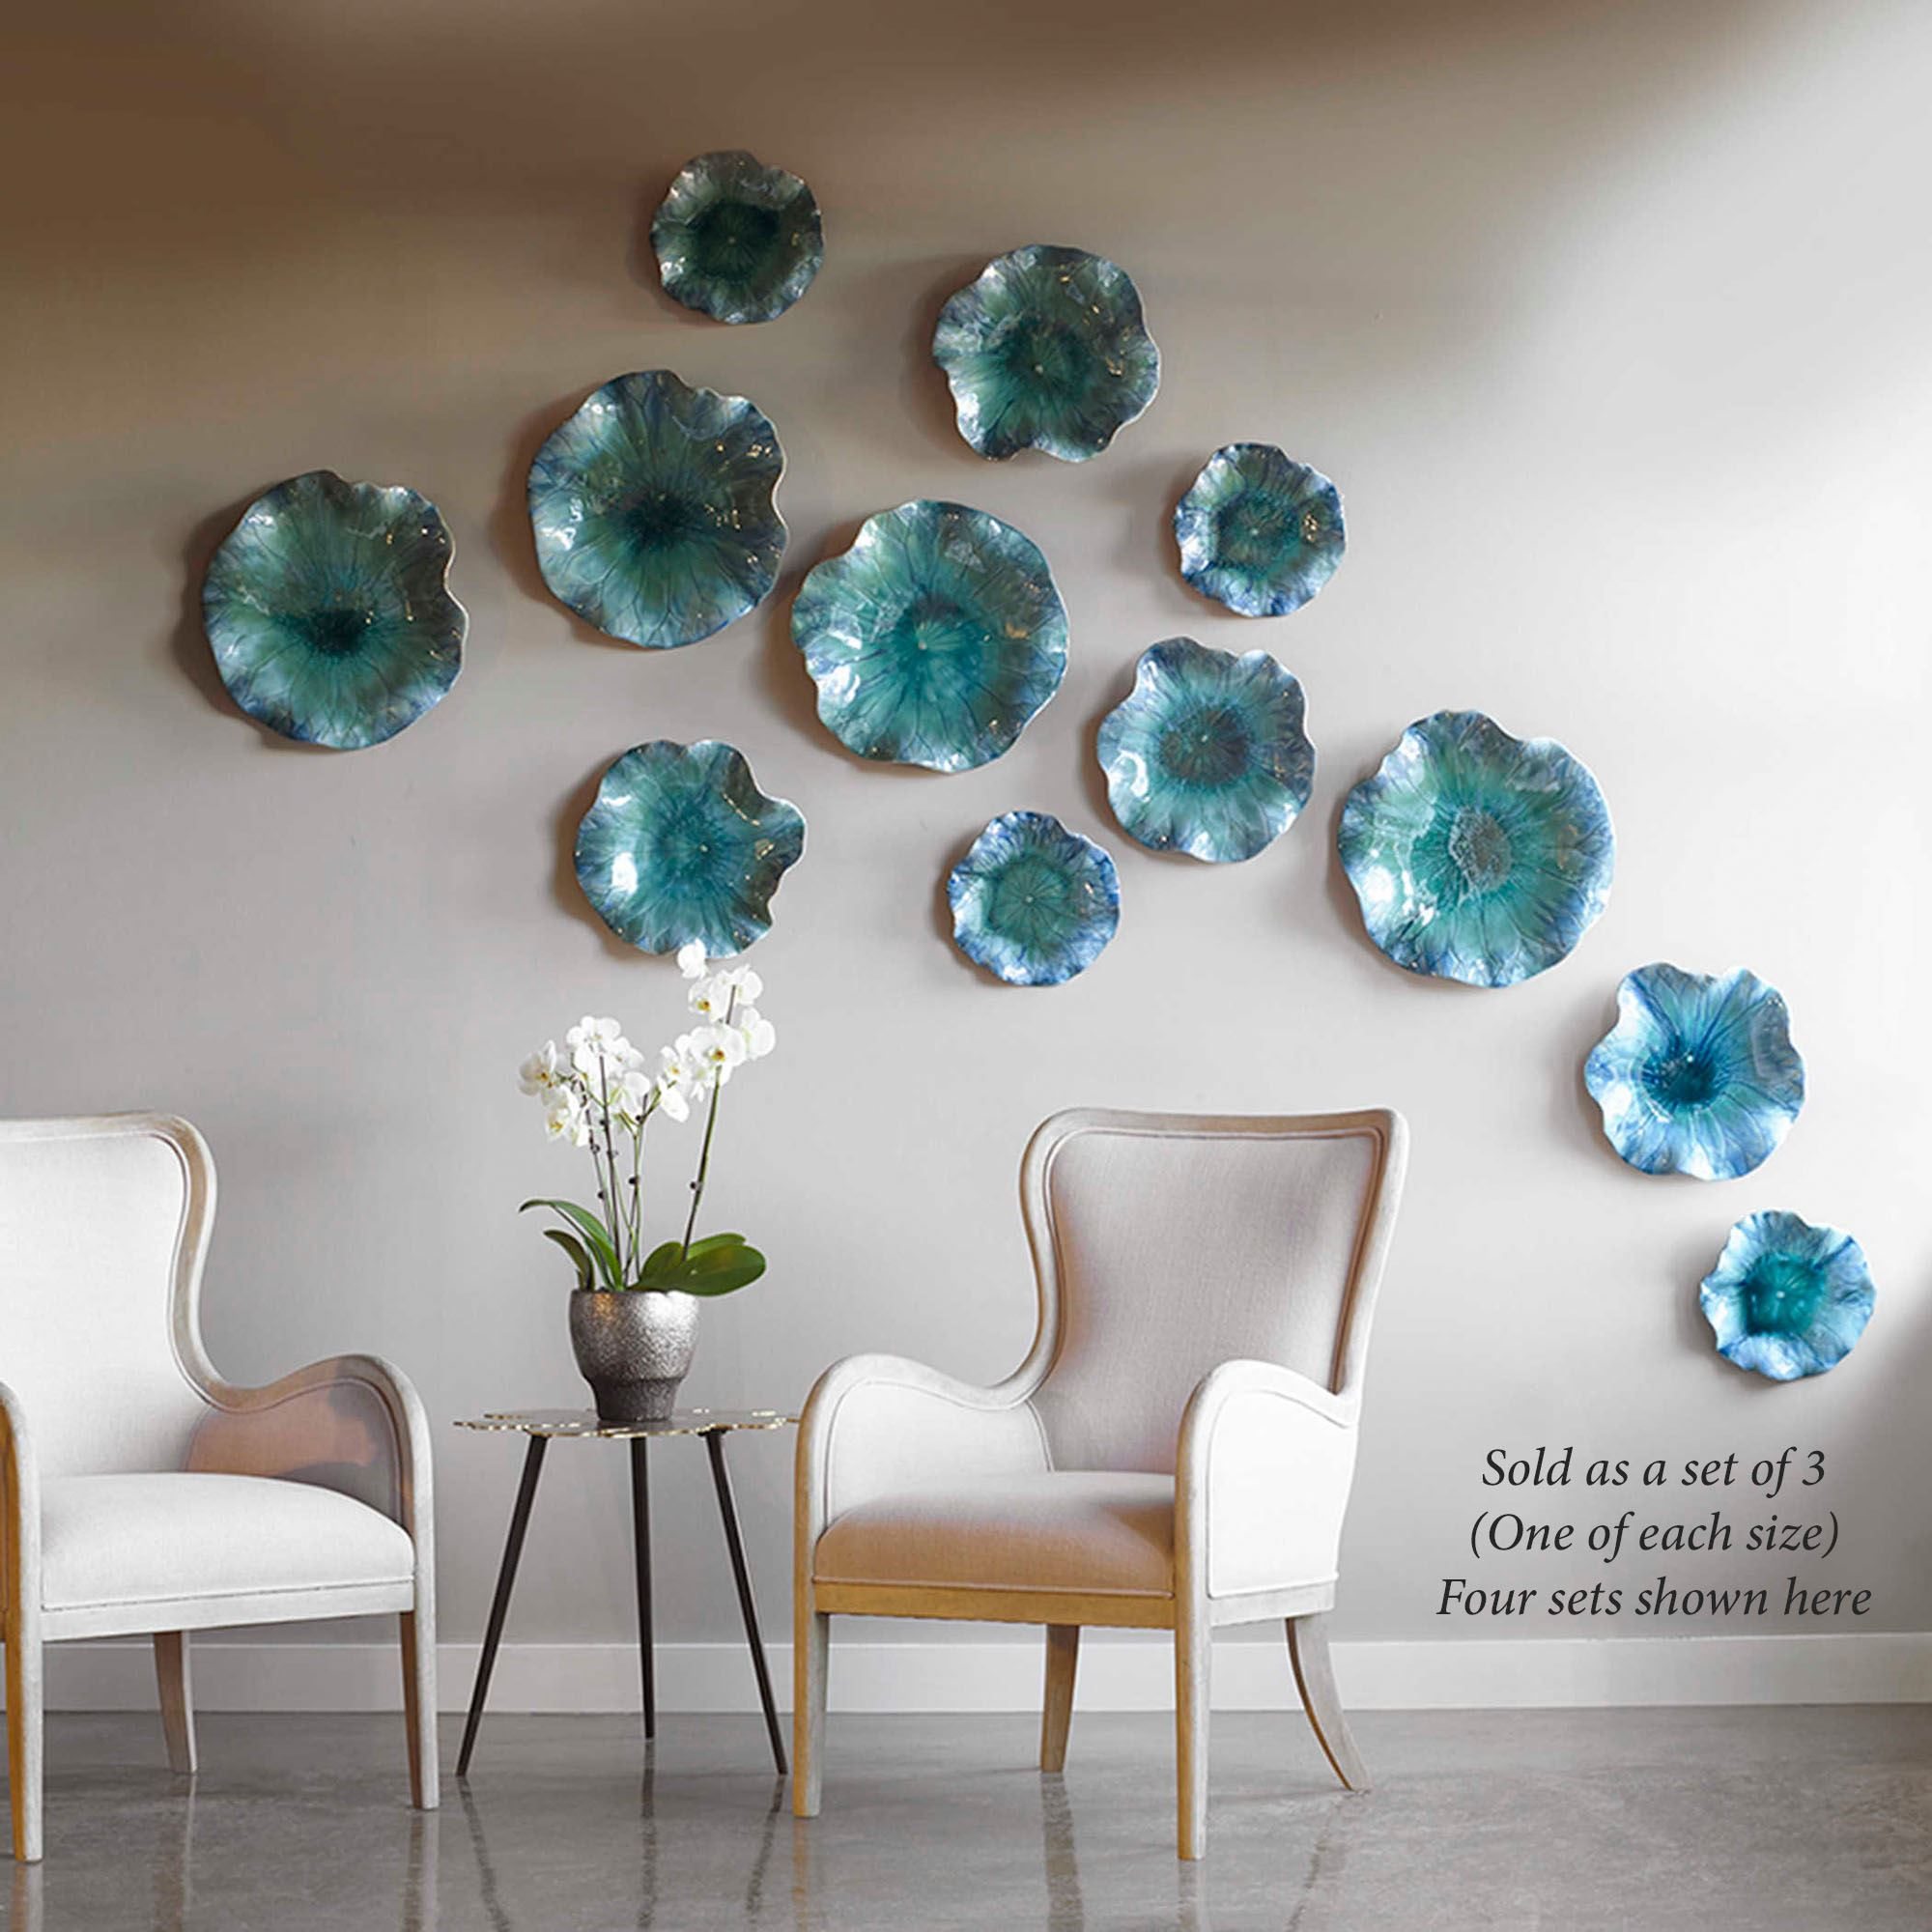 Abella Ceramic Abstract Flower Art Set For Wall Or Table